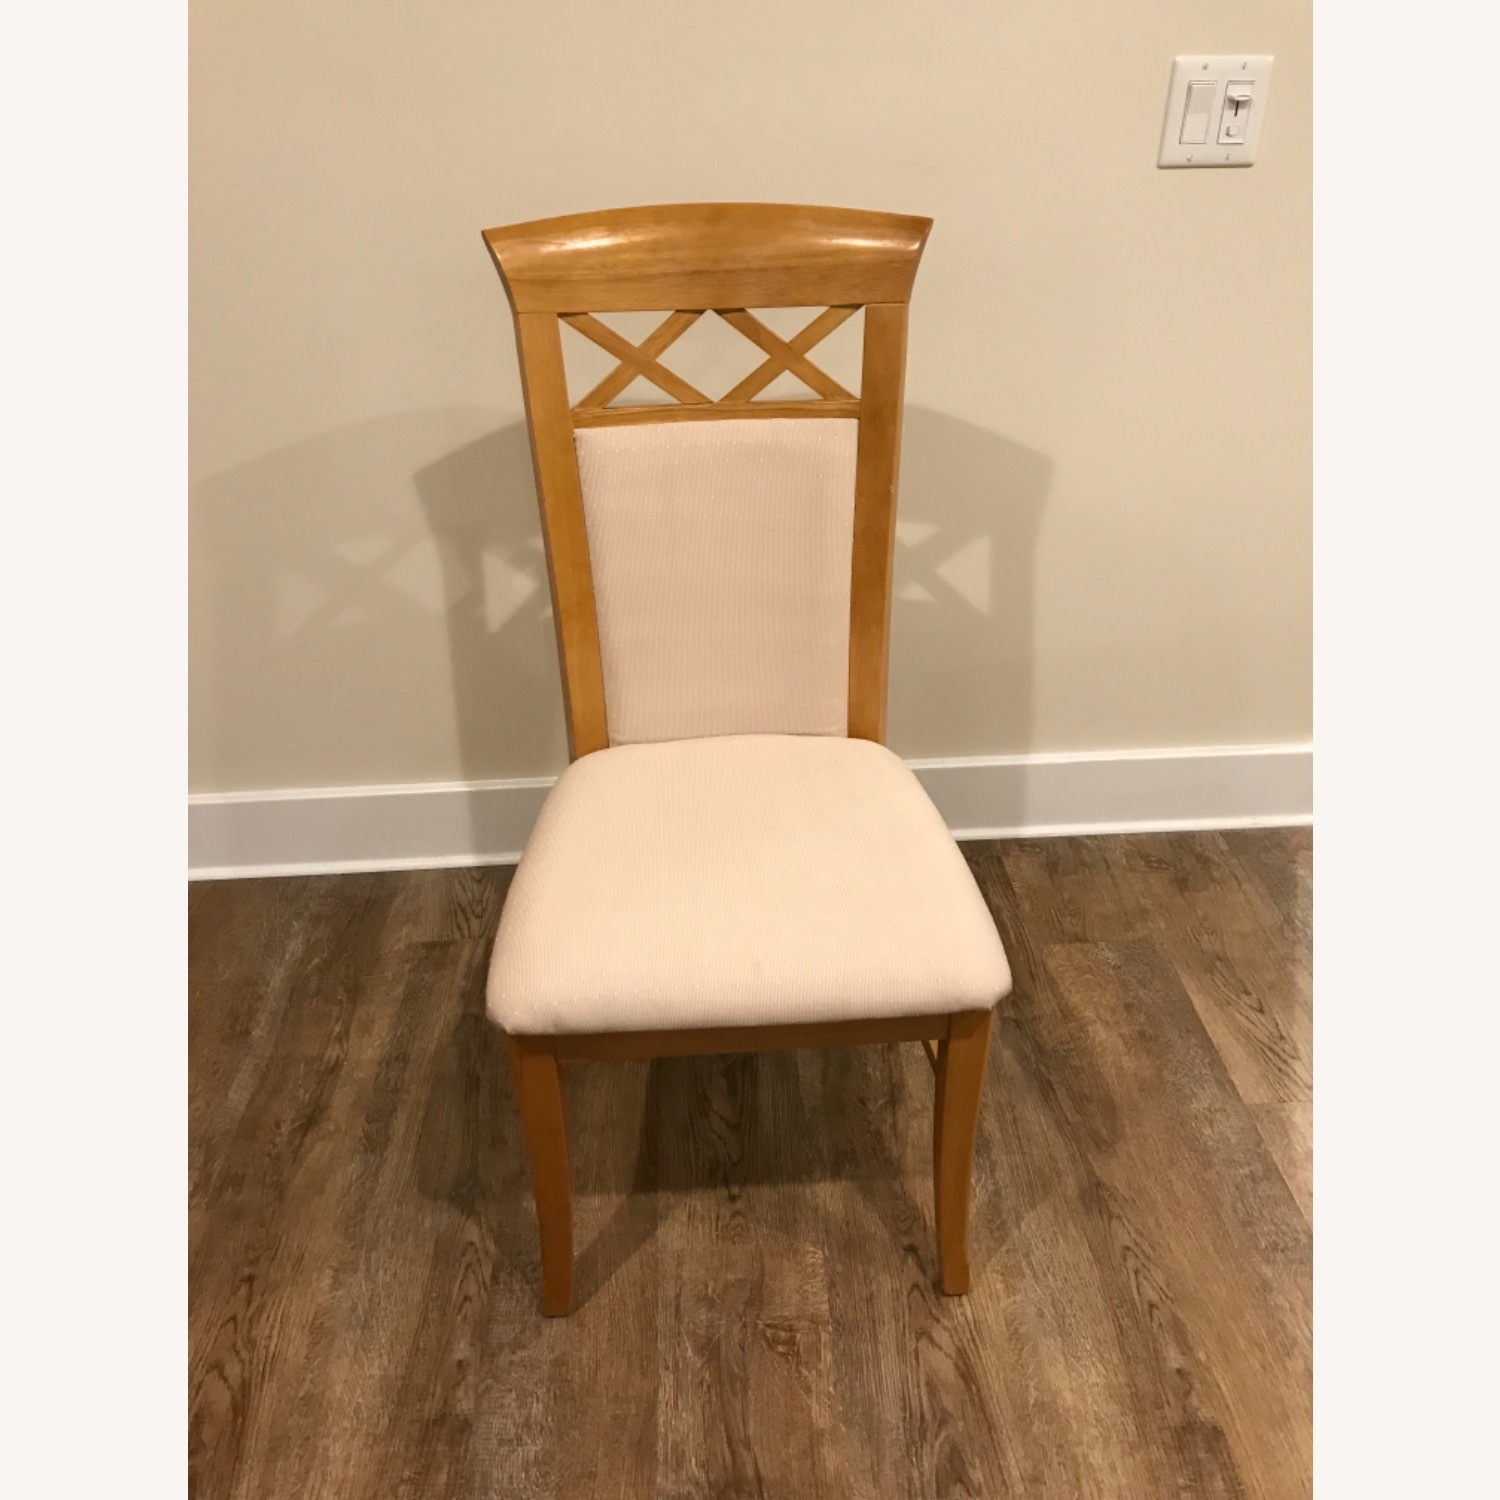 Levitz Furniture Dining Chairs - image-1